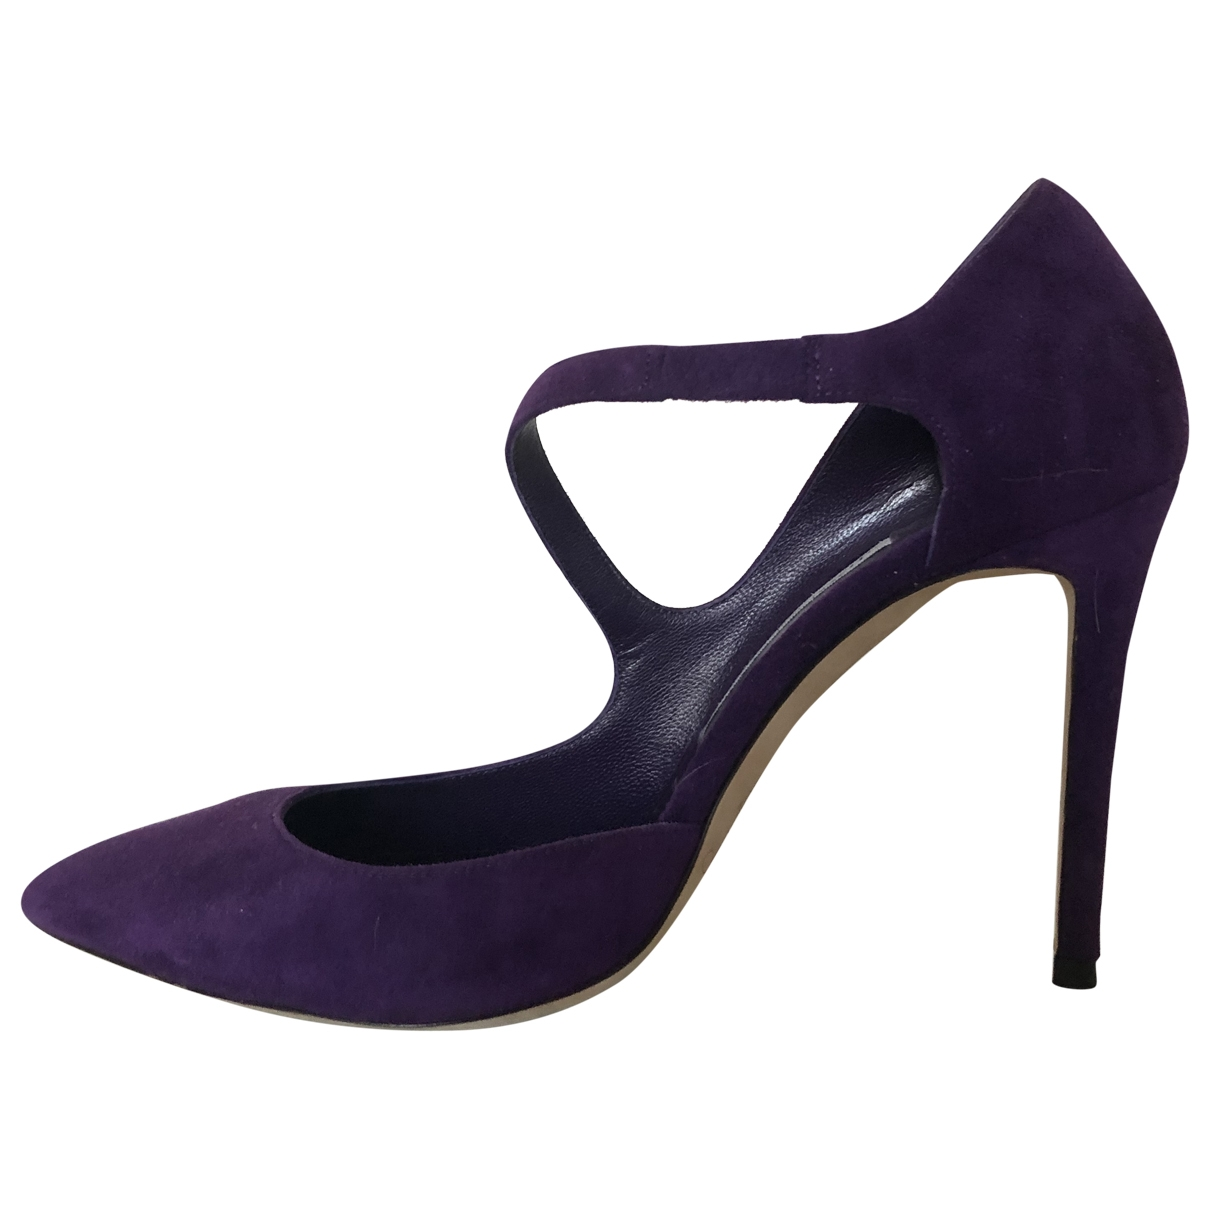 Jimmy Choo \N Pumps in  Lila Veloursleder